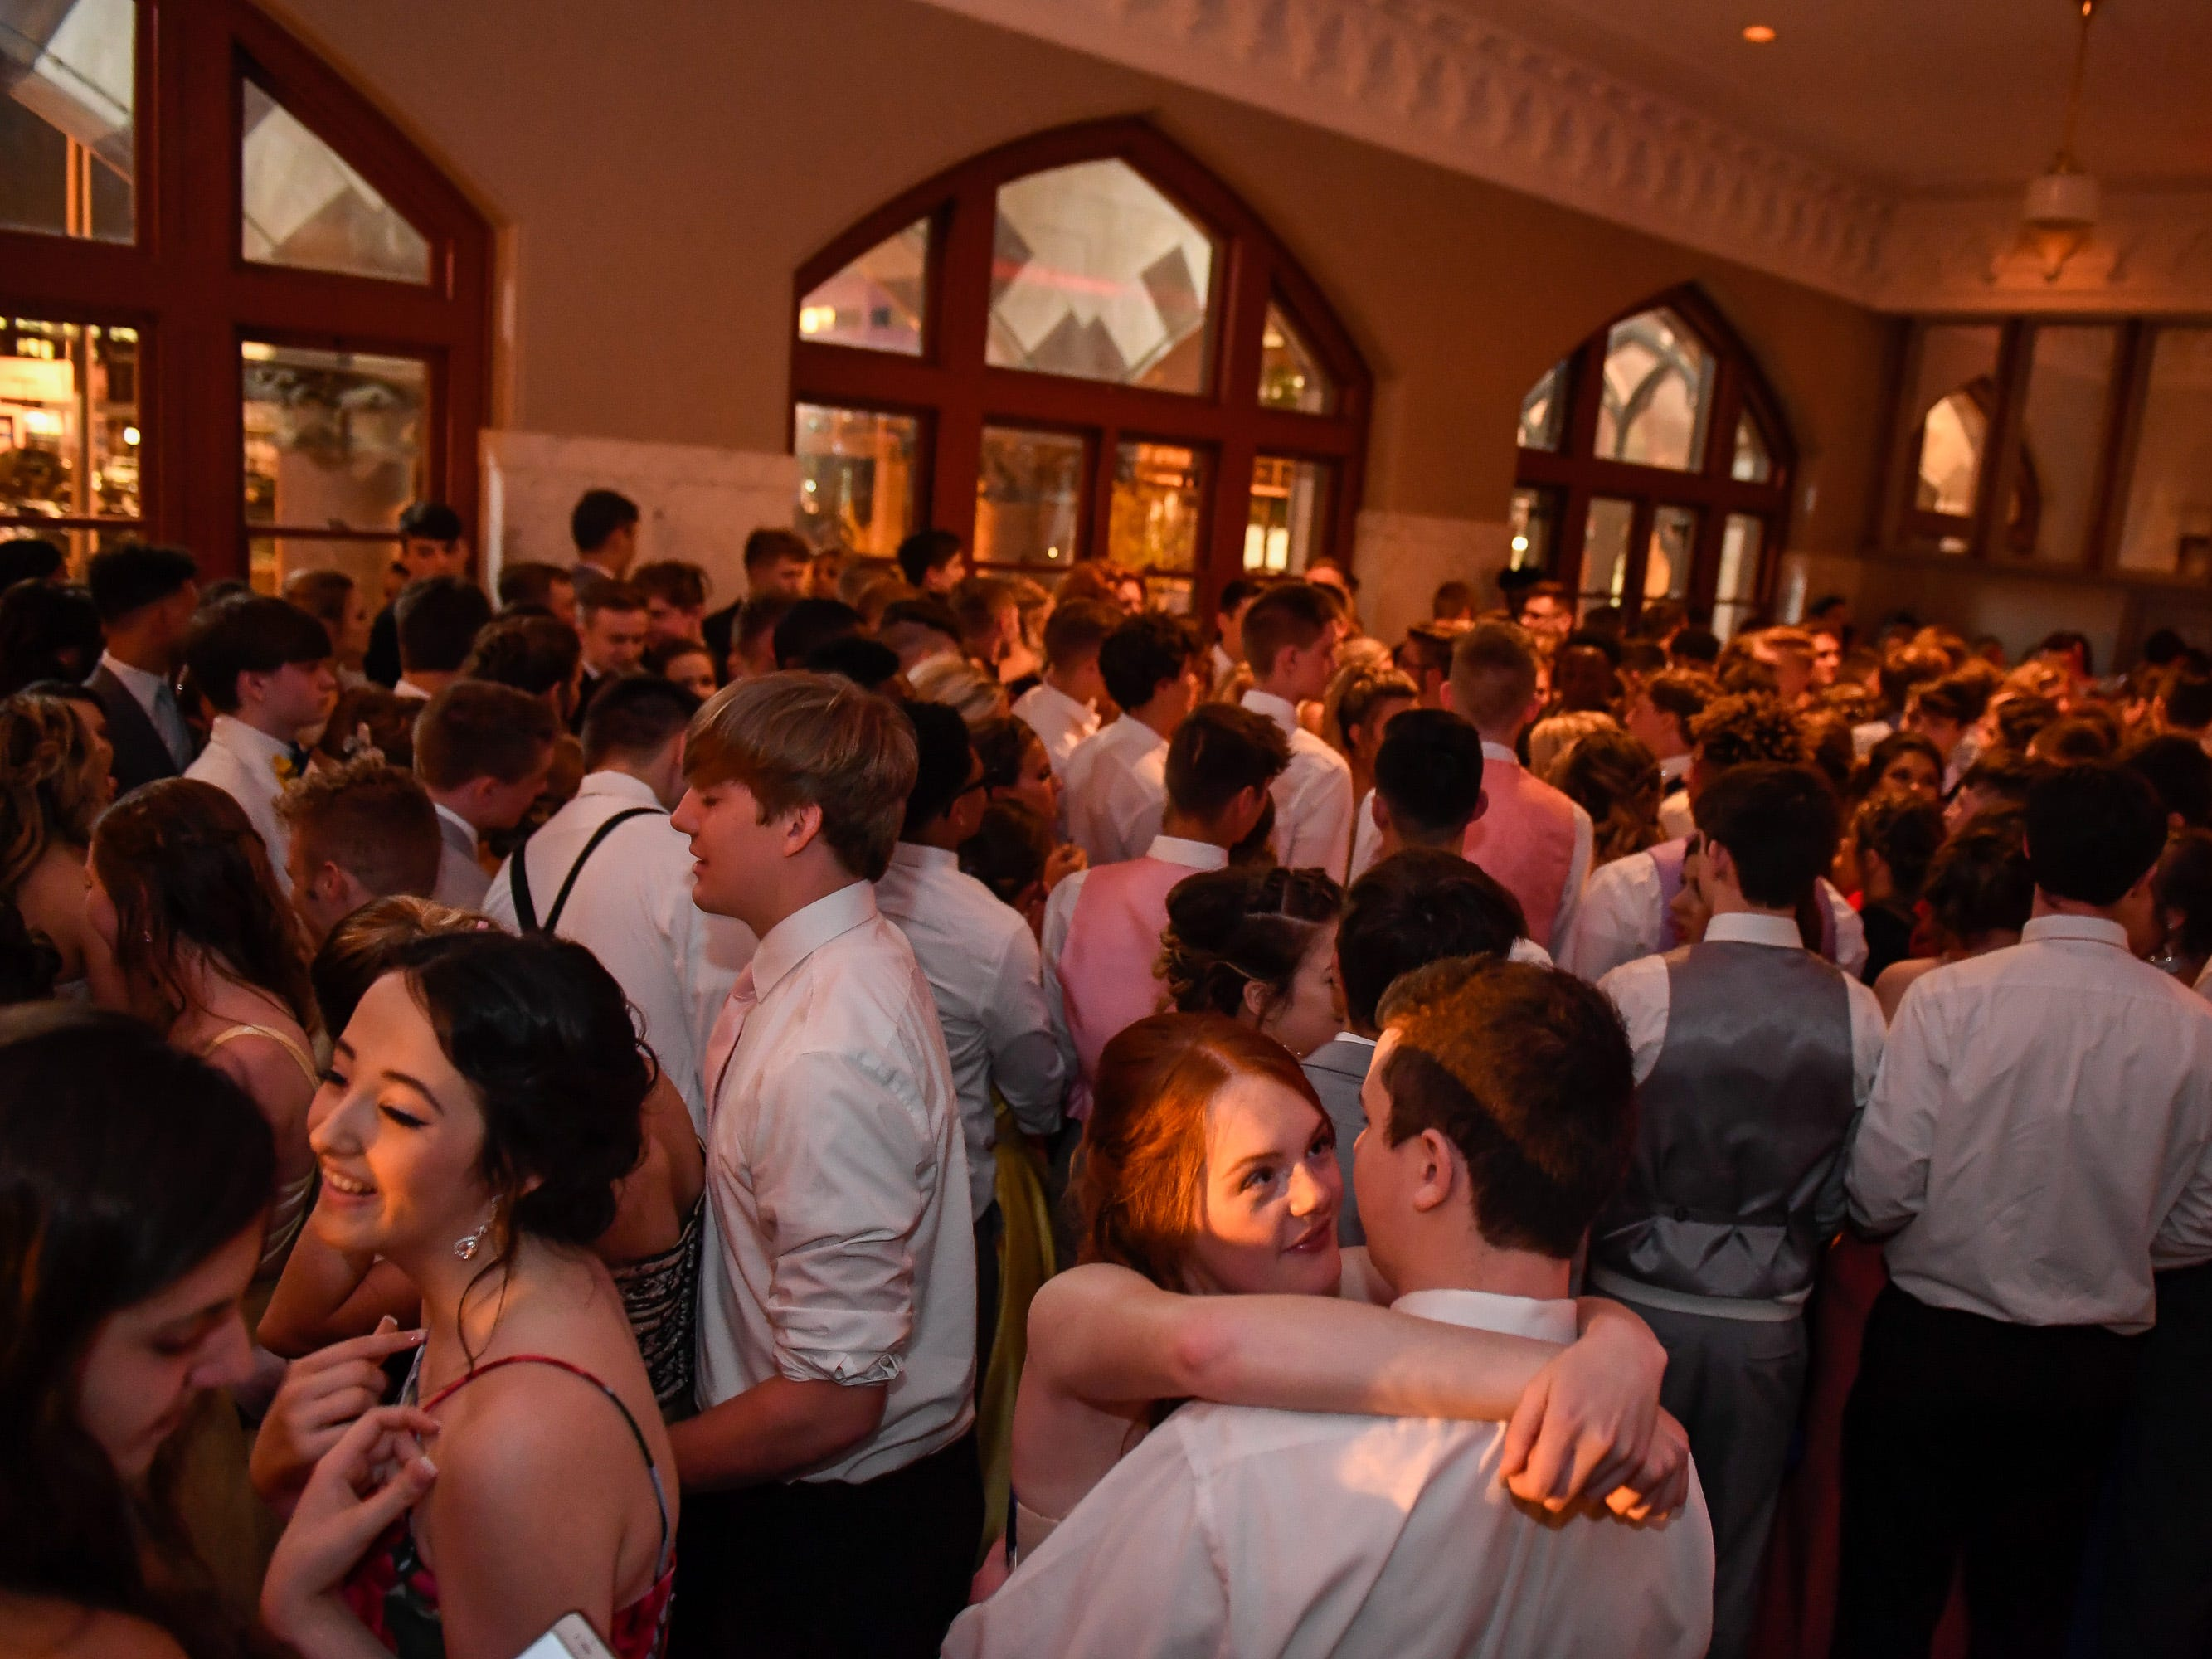 A jammed packed dance floor at the North High School Prom held at the Old Post Office in downtown Evansville Saturday, April 13, 2019.